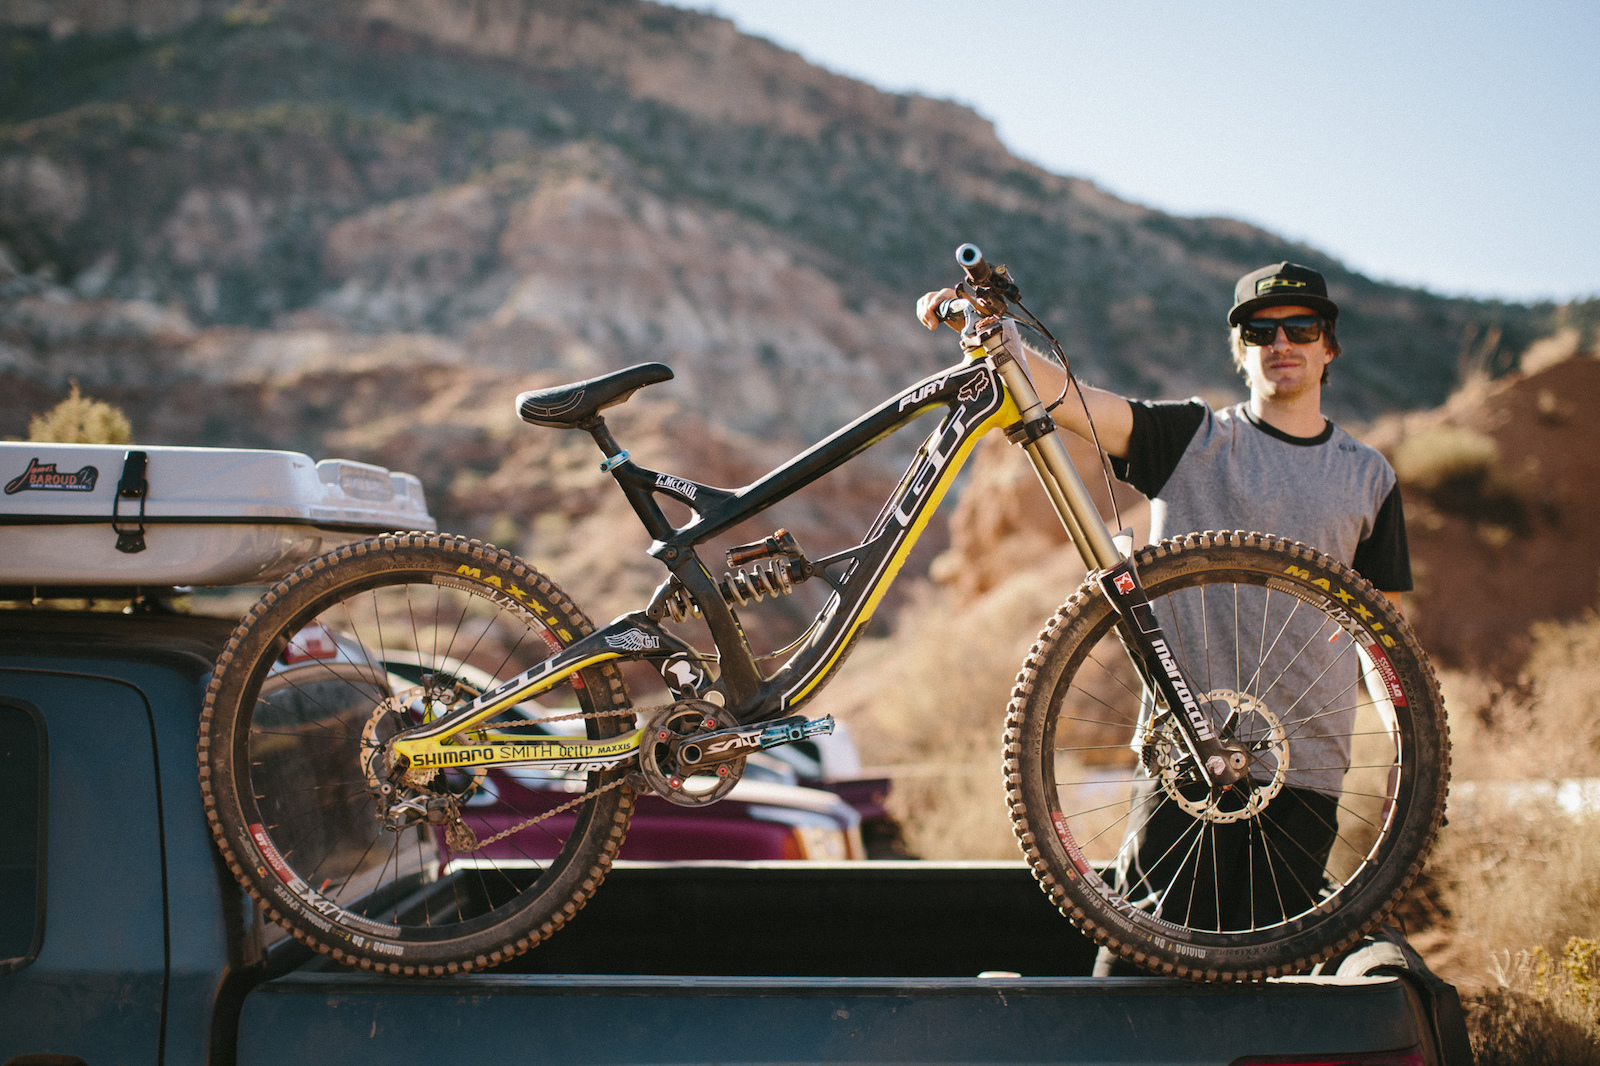 Tyler McCaul at RedBull Rampage 2015 Virgin Utah USA